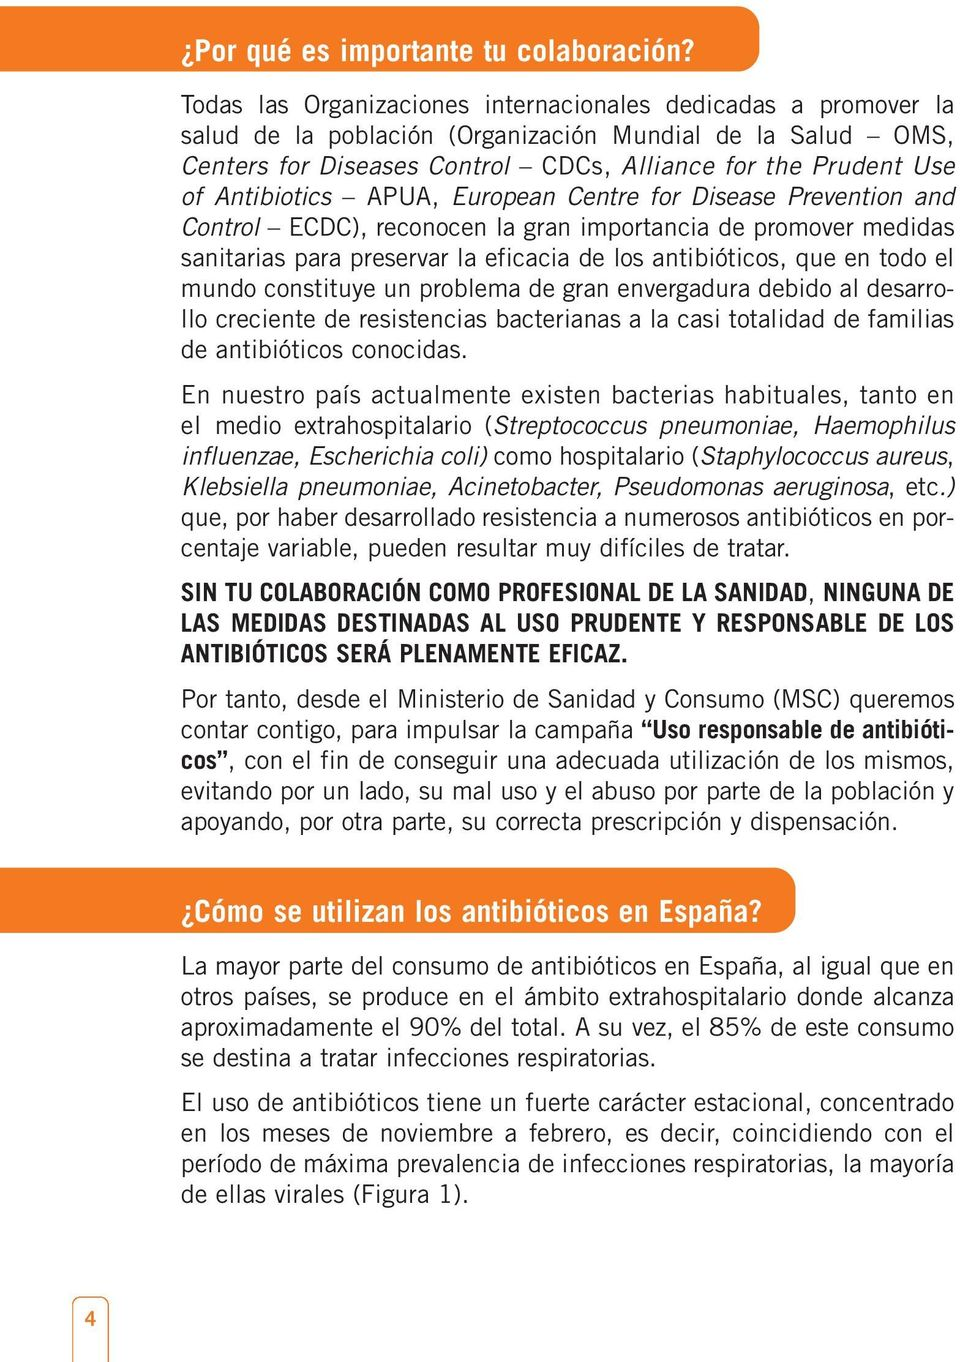 Antibiotics APUA, European Centre for Disease Prevention and Control ECDC), reconocen la gran importancia de promover medidas sanitarias para preservar la eficacia de los antibióticos, que en todo el